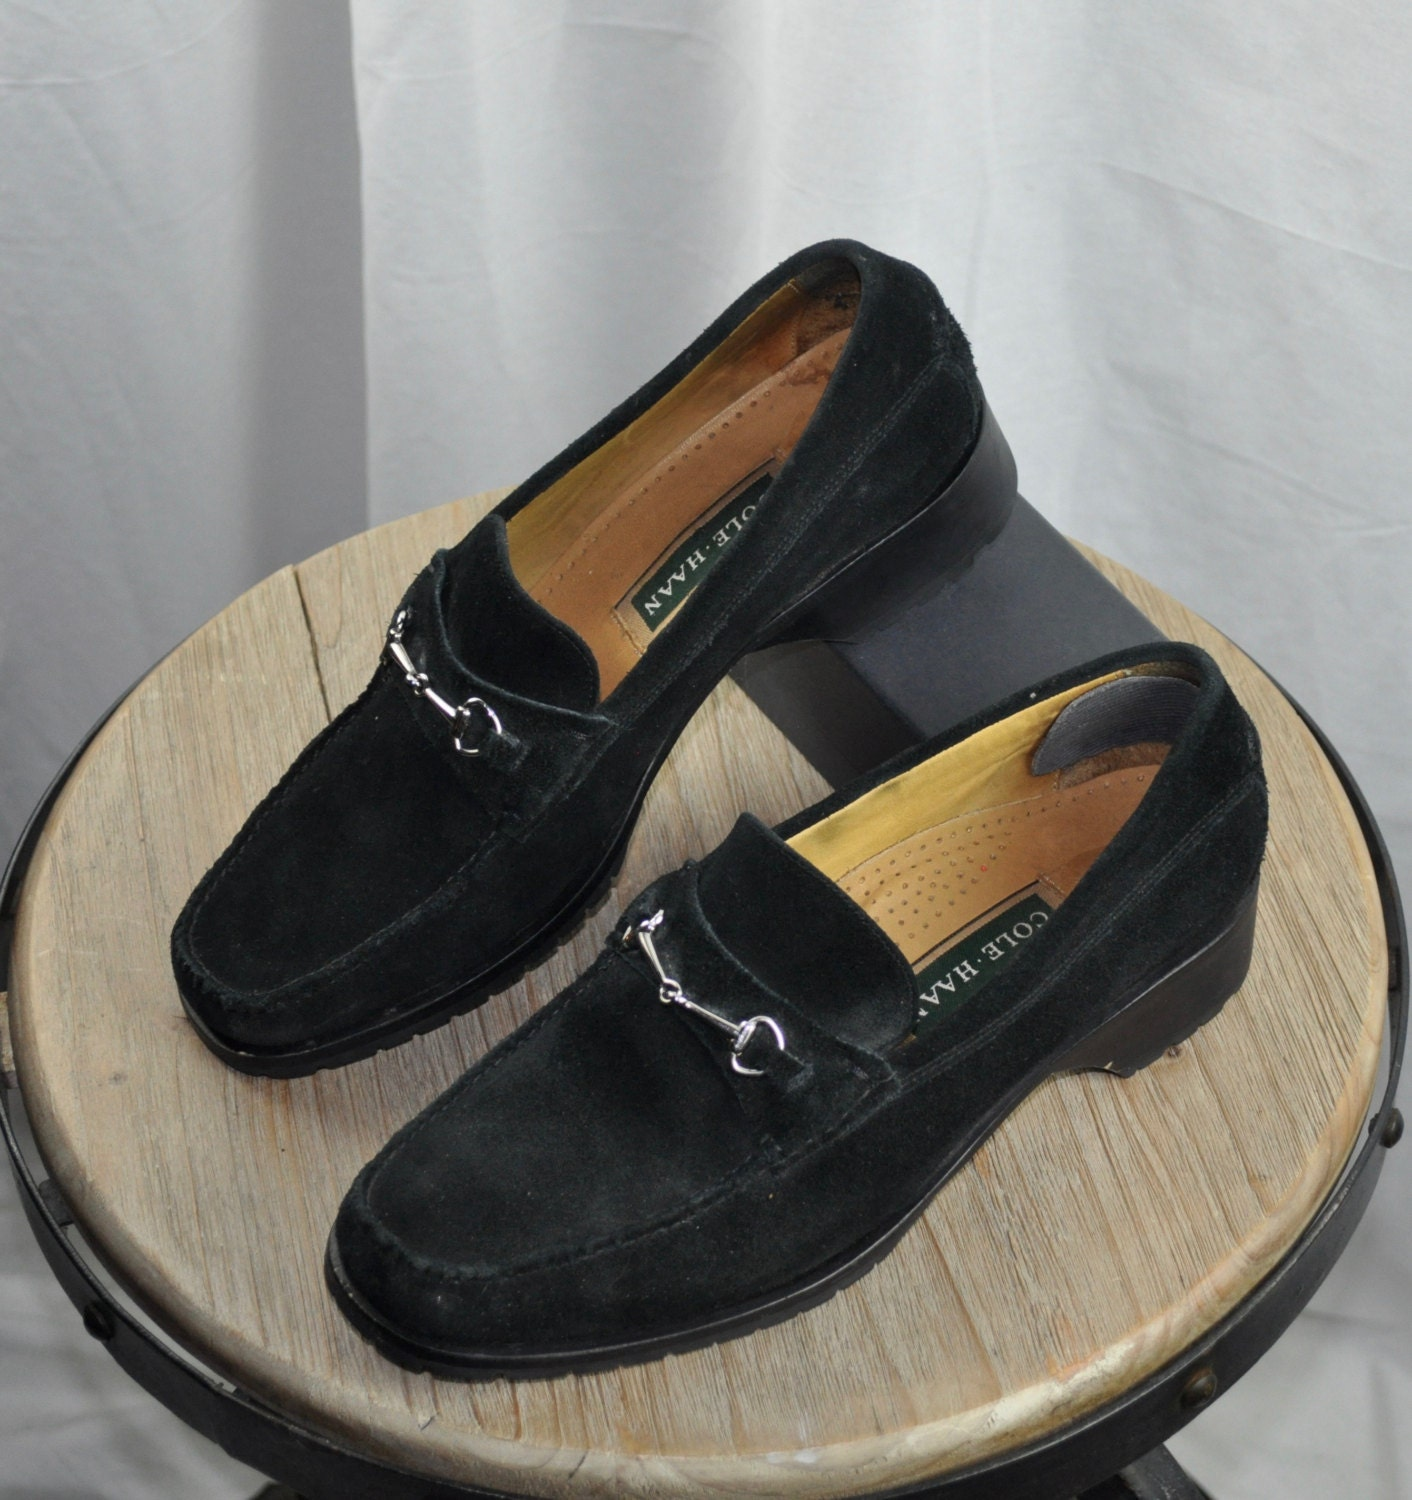 ad975878c81 Women s Cole Haan Black Suede Loafer with Silver Buckle Sz 9.5 (9 1 ...